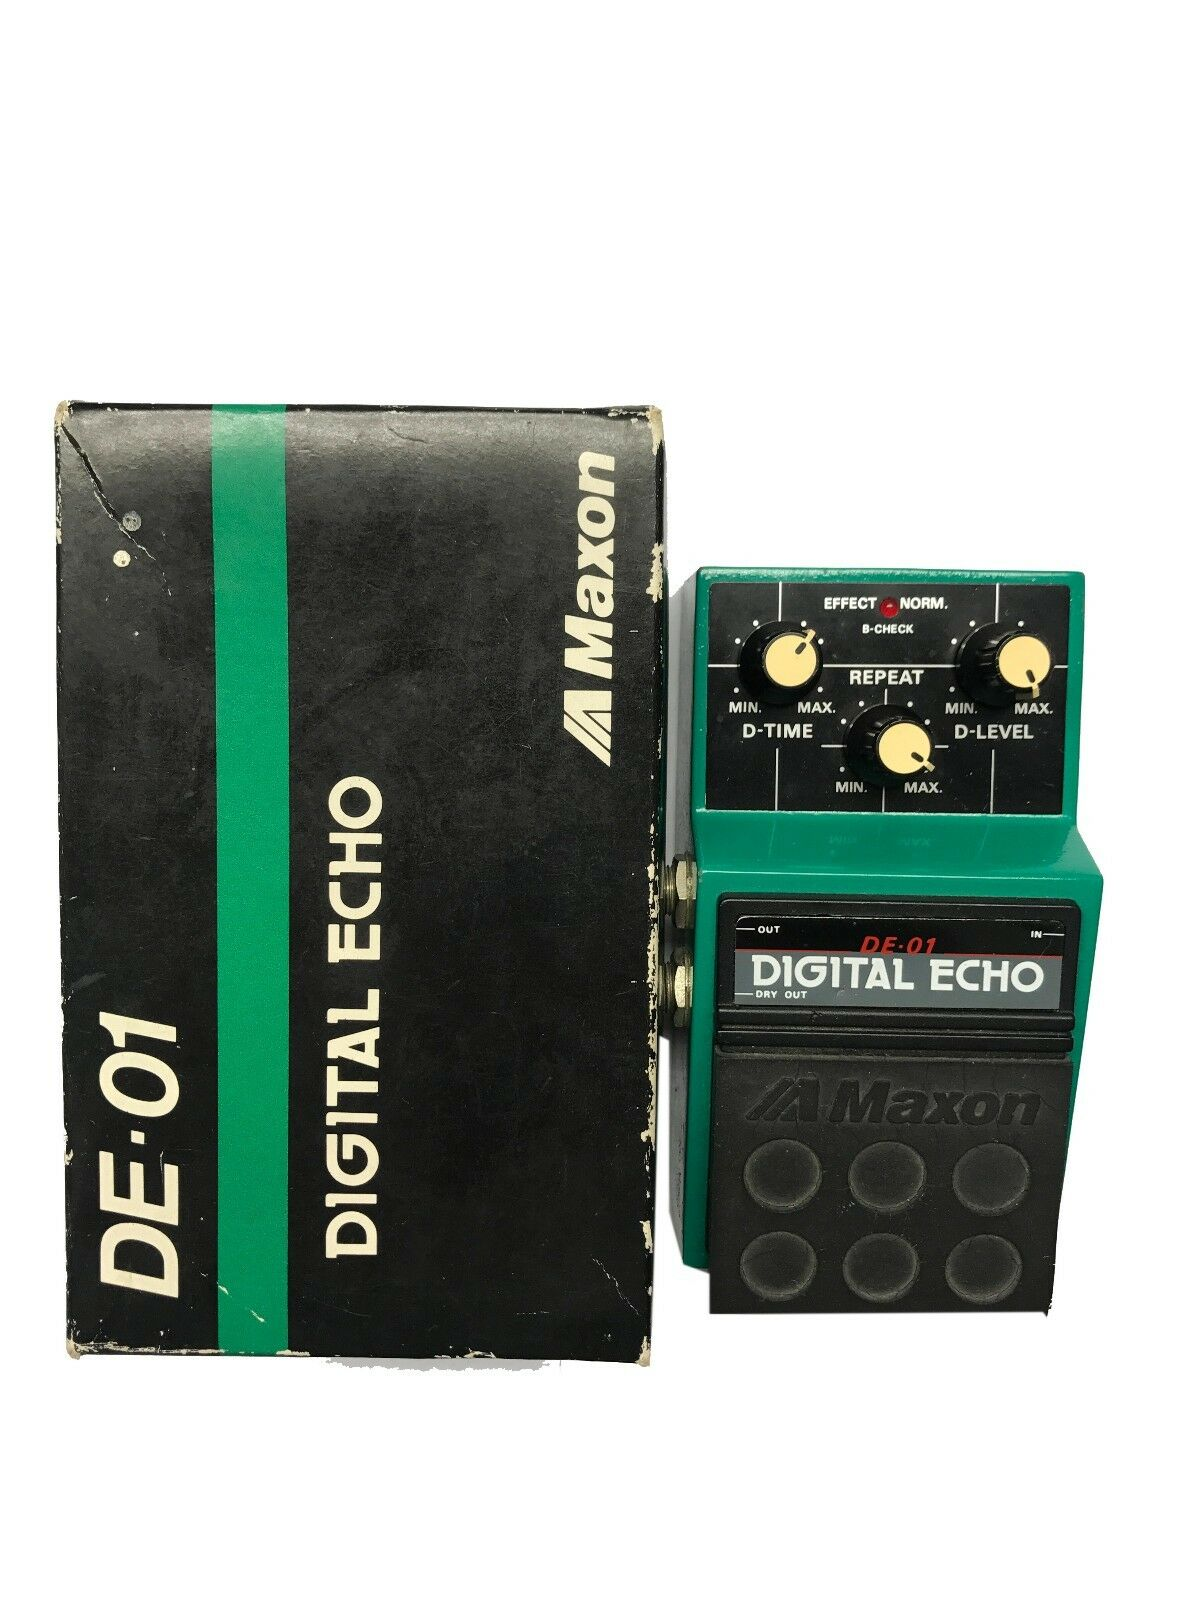 Maxon DE-01, Digital Echo, Made In Japan, 1980s, Original Boxing, Vintage Effect